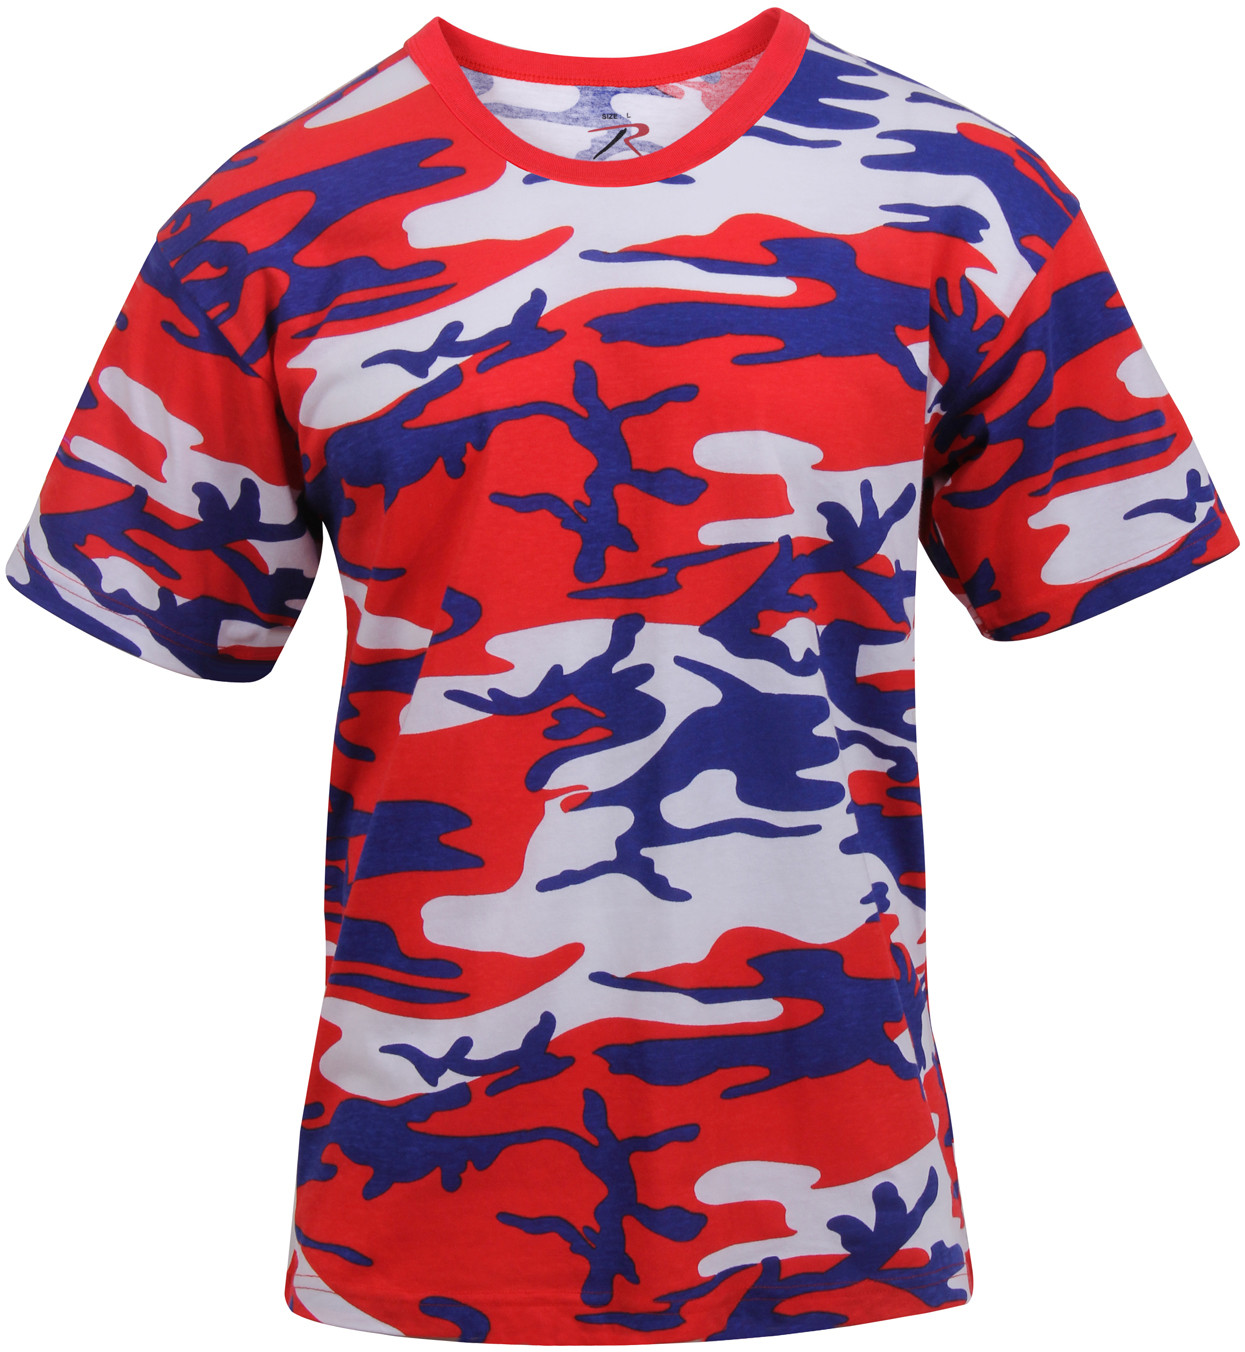 5cff7b4d Red White Blue Camouflage Military Short Sleeve T-Shirt